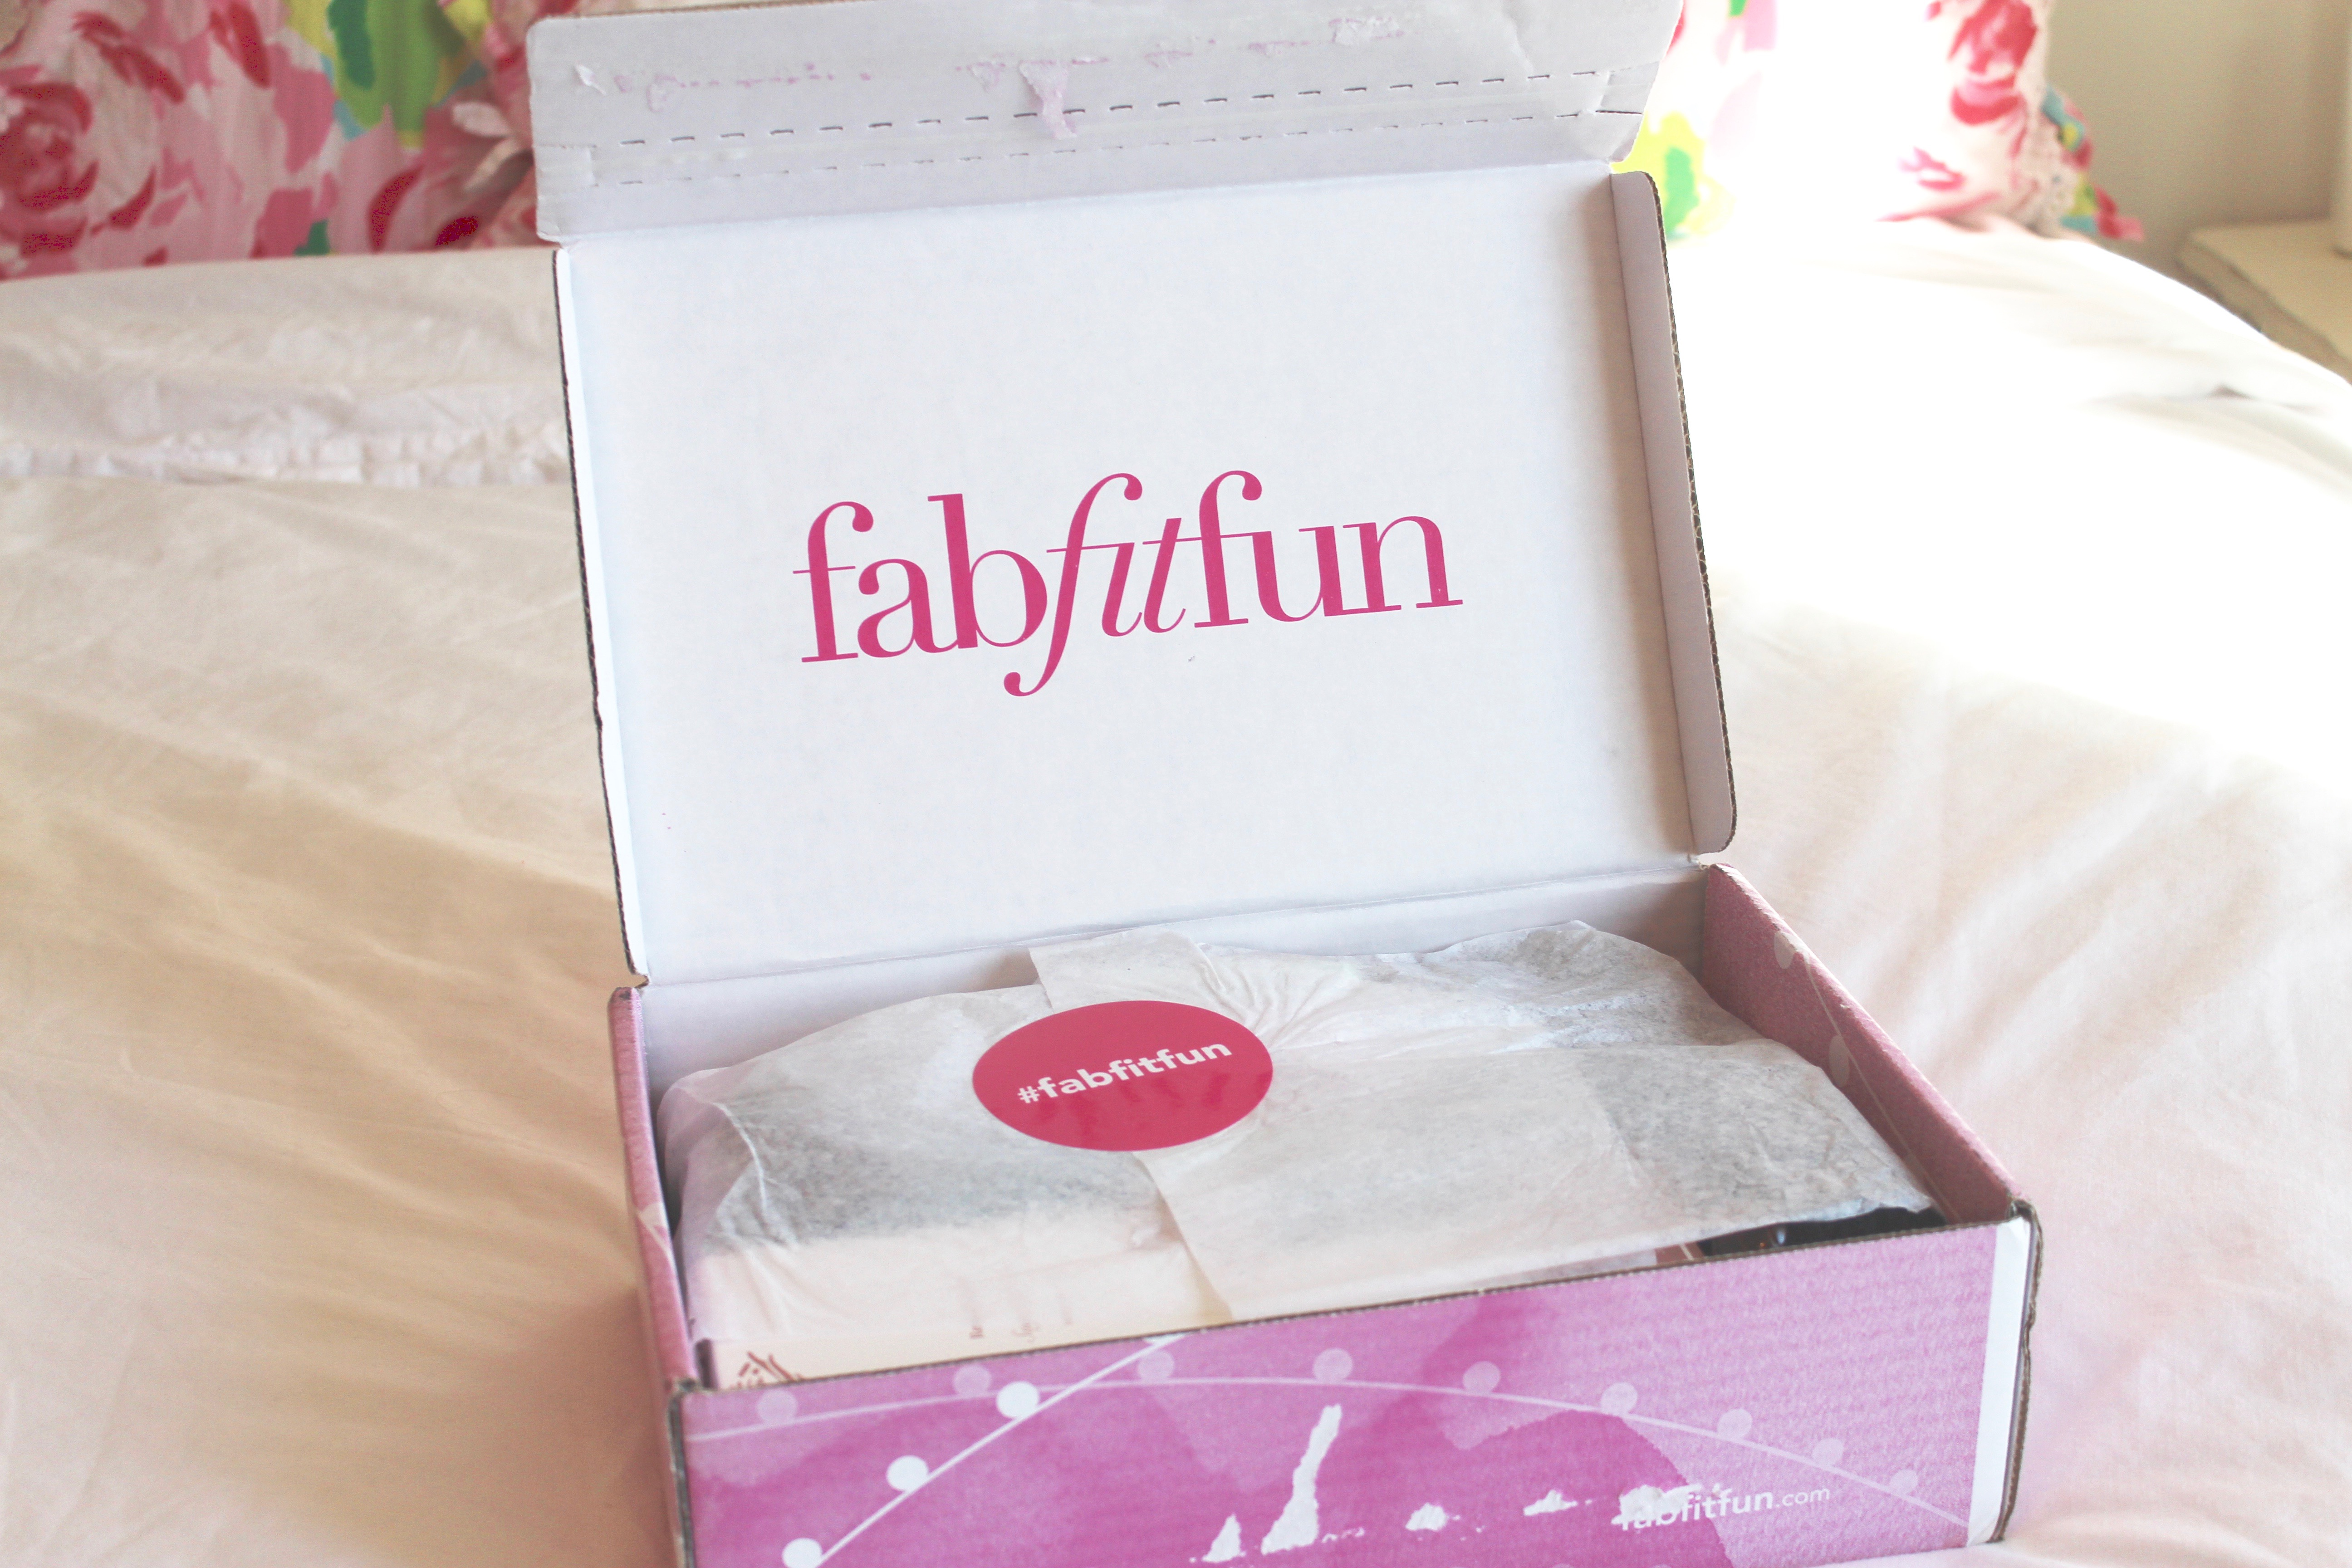 FabFitFun Winter box | by Lauren Lindmark on Daily Dose of Charm